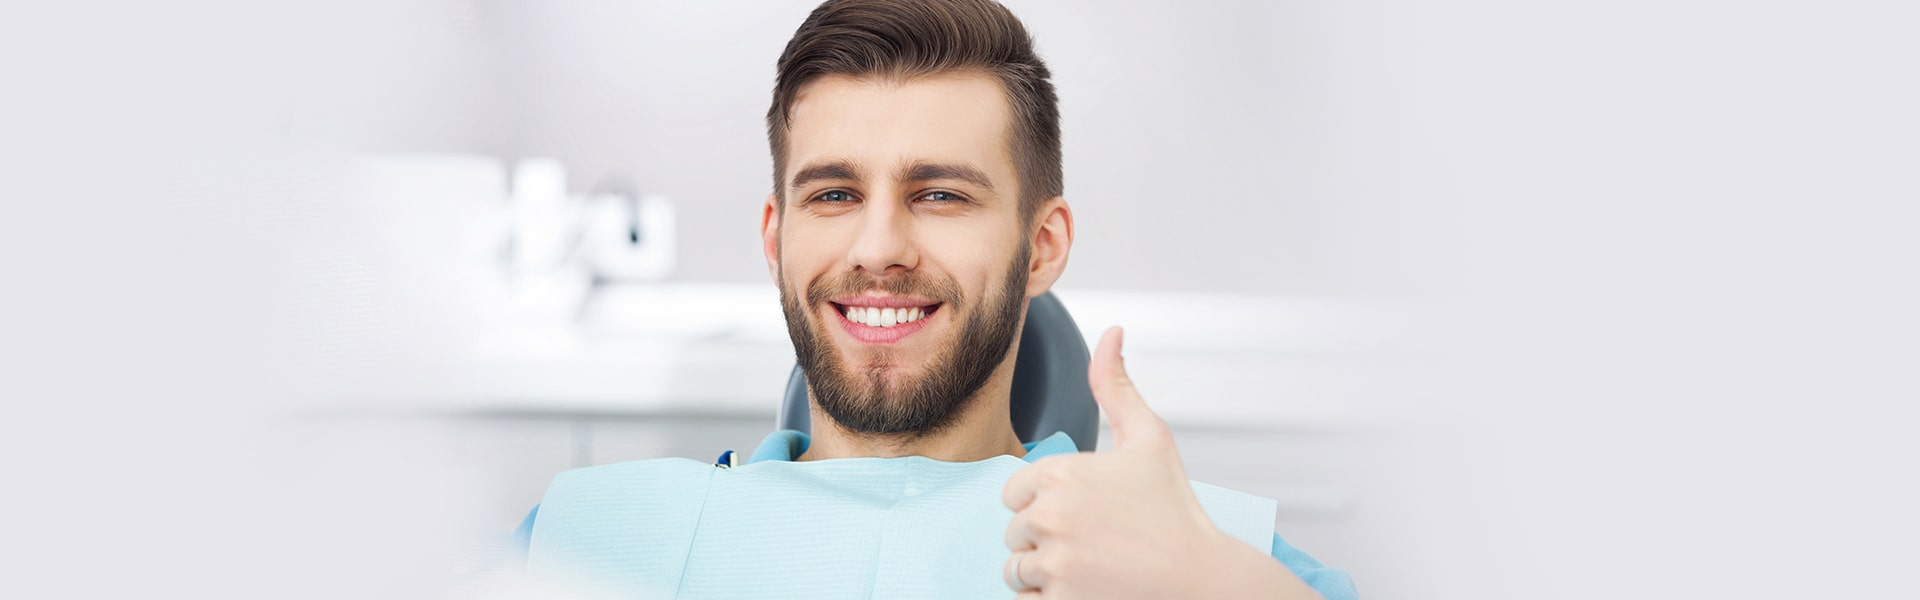 Why Fall Prey to Periodontal Disease When You Can Comfortably Prevent It?